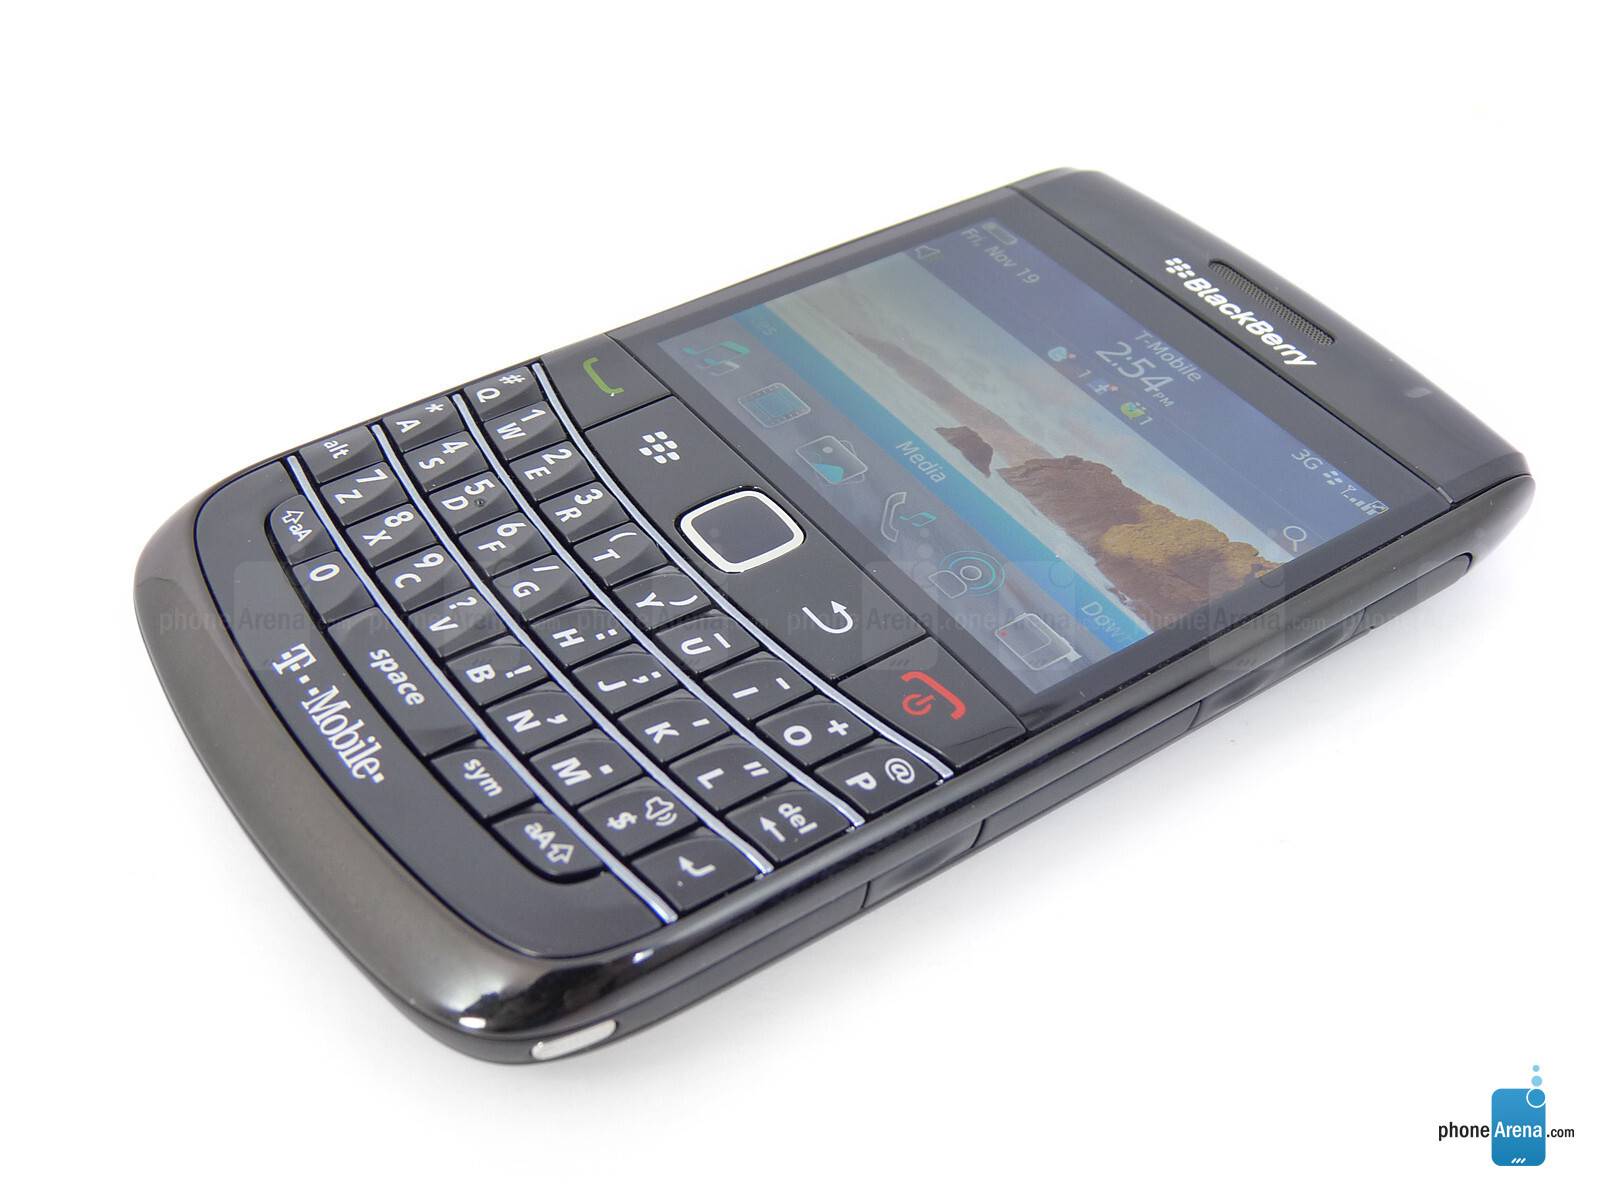 blackberry bold 9780 specs. Black Bedroom Furniture Sets. Home Design Ideas